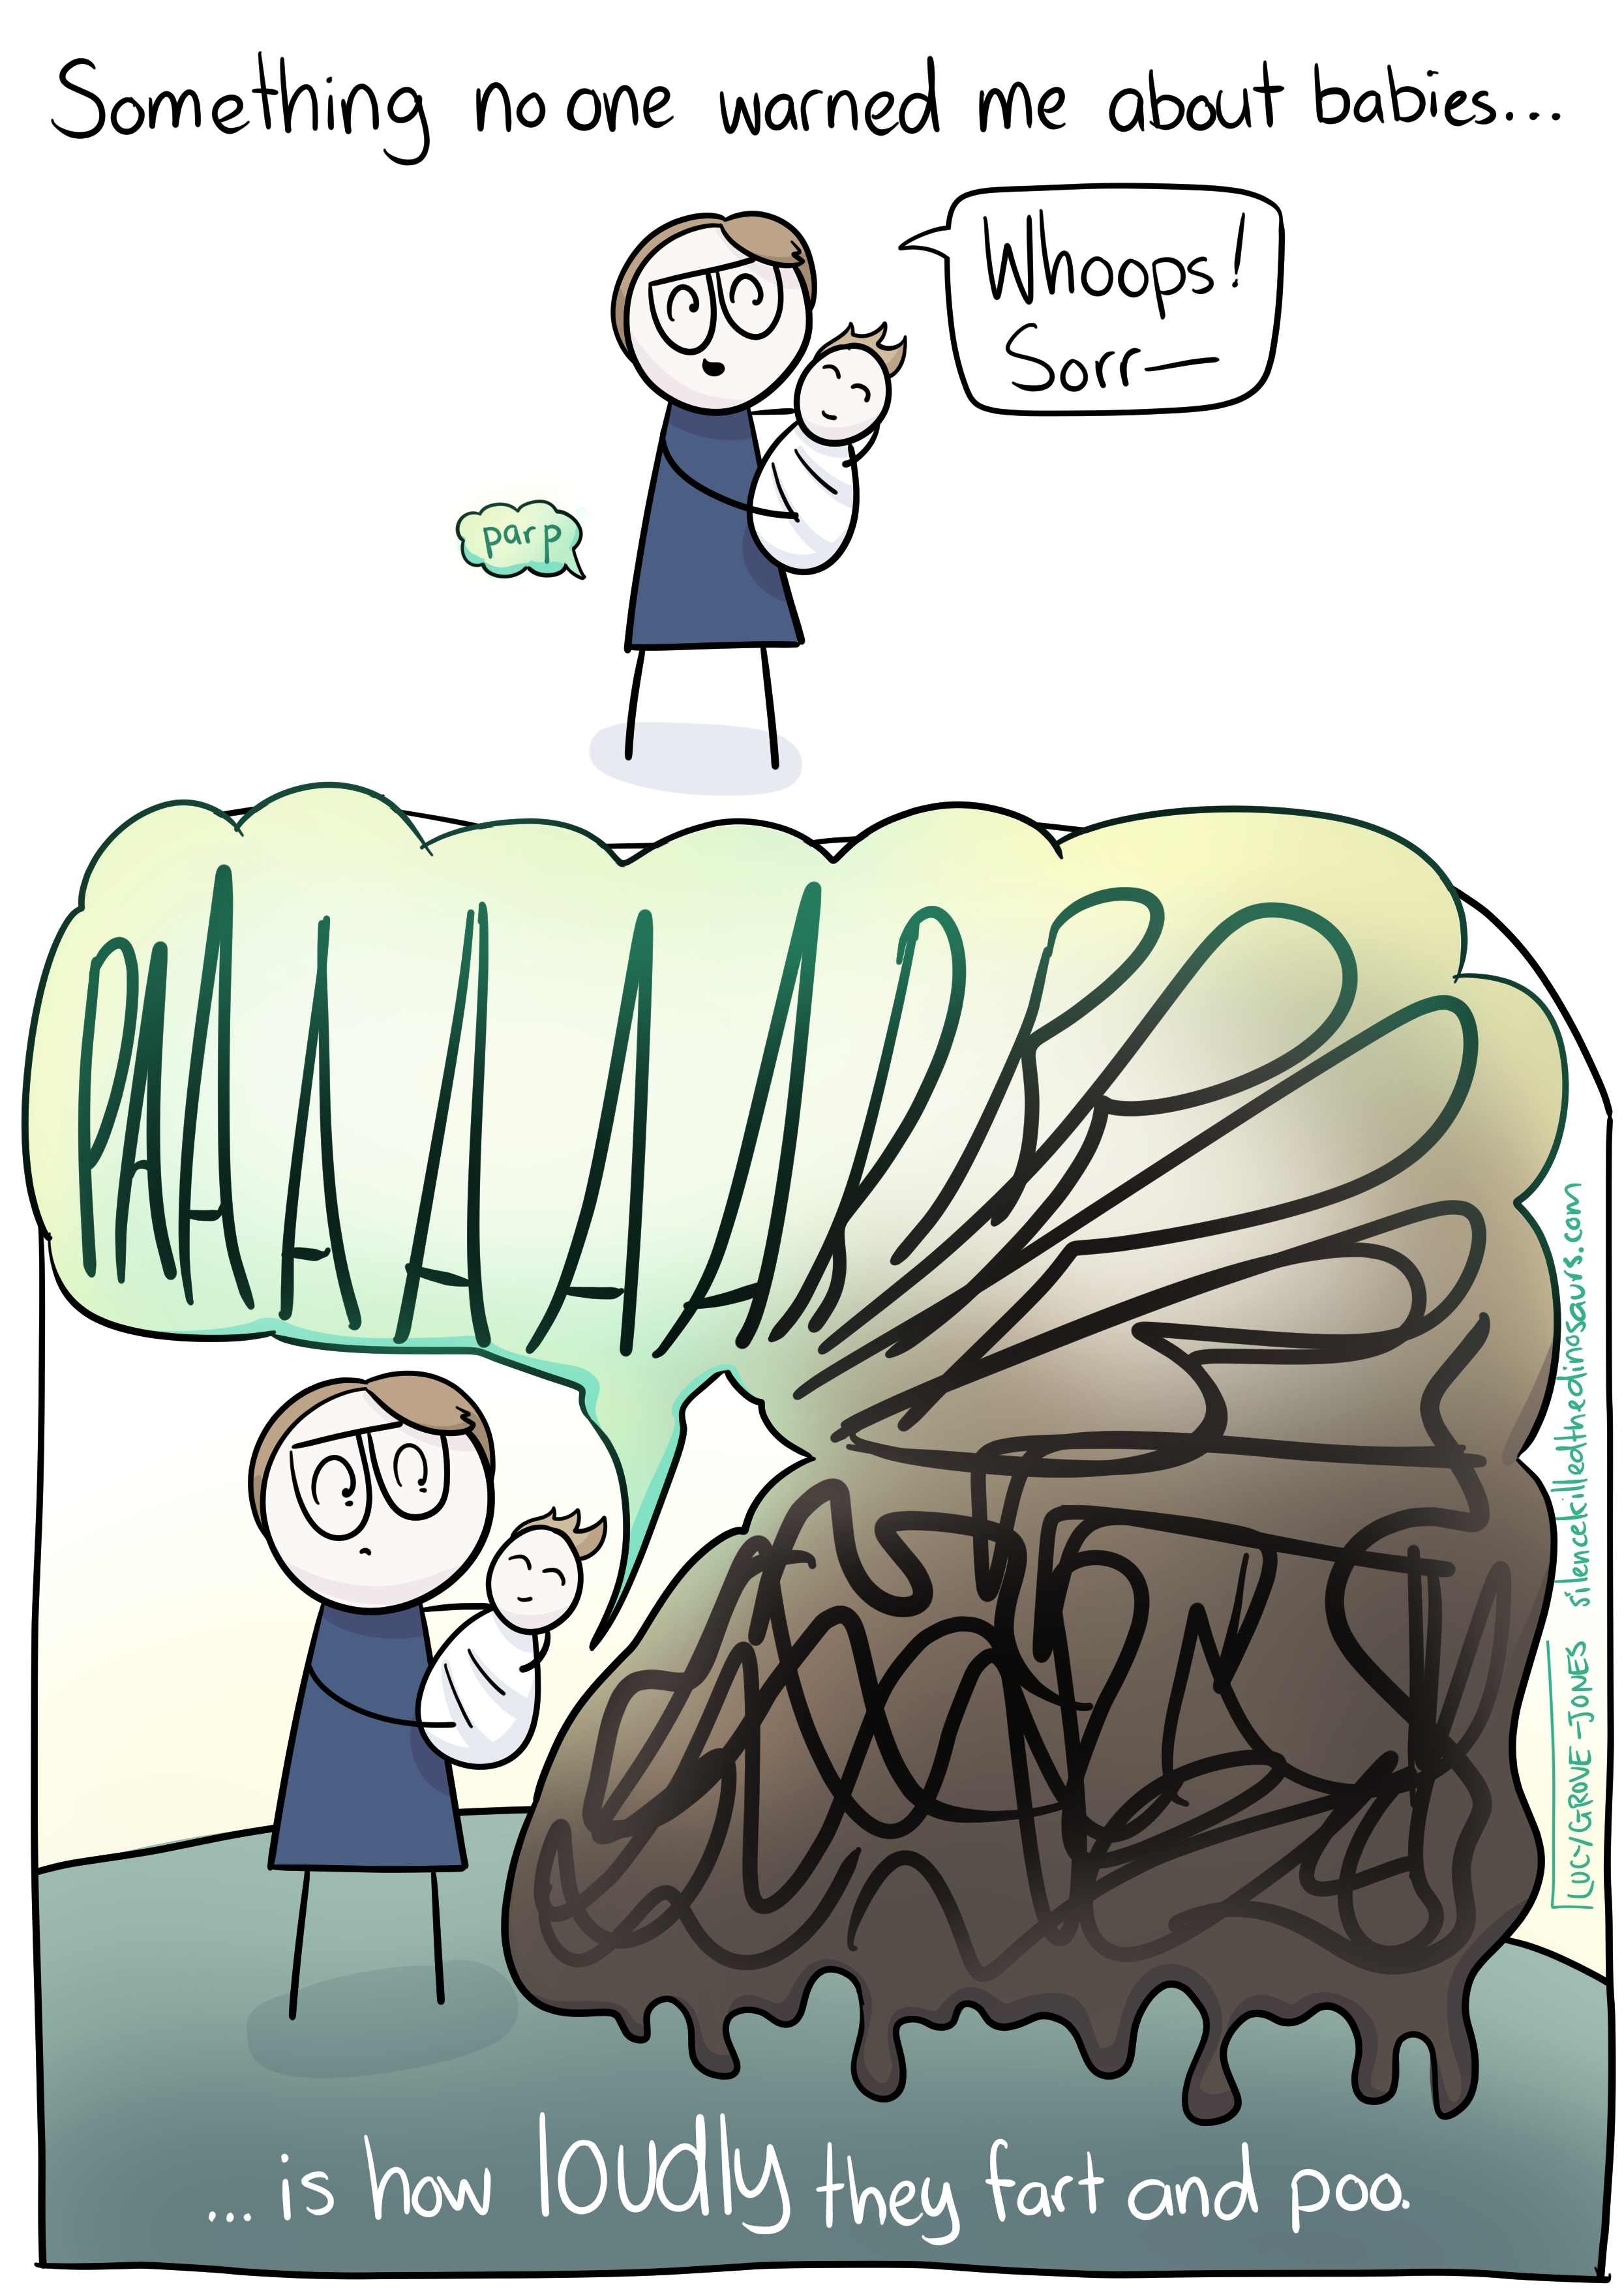 """2 panels. First panel, text reads: 'Something no one warned me about babies...' while a cartoon me holds a cartoon baby. A small green fart cloud comes out of my behind, reading 'parp', and I say """"Whoops! Sorr--"""". Panel 2. An enormous green-shading-to-dripping-brown fart cloud reading 'PAAAARRRRRRBBBB--""""and turning into a messy scribble comes out of the baby's behind. I look shocked. Text reads: '... is how loudly they fart and poo.'"""